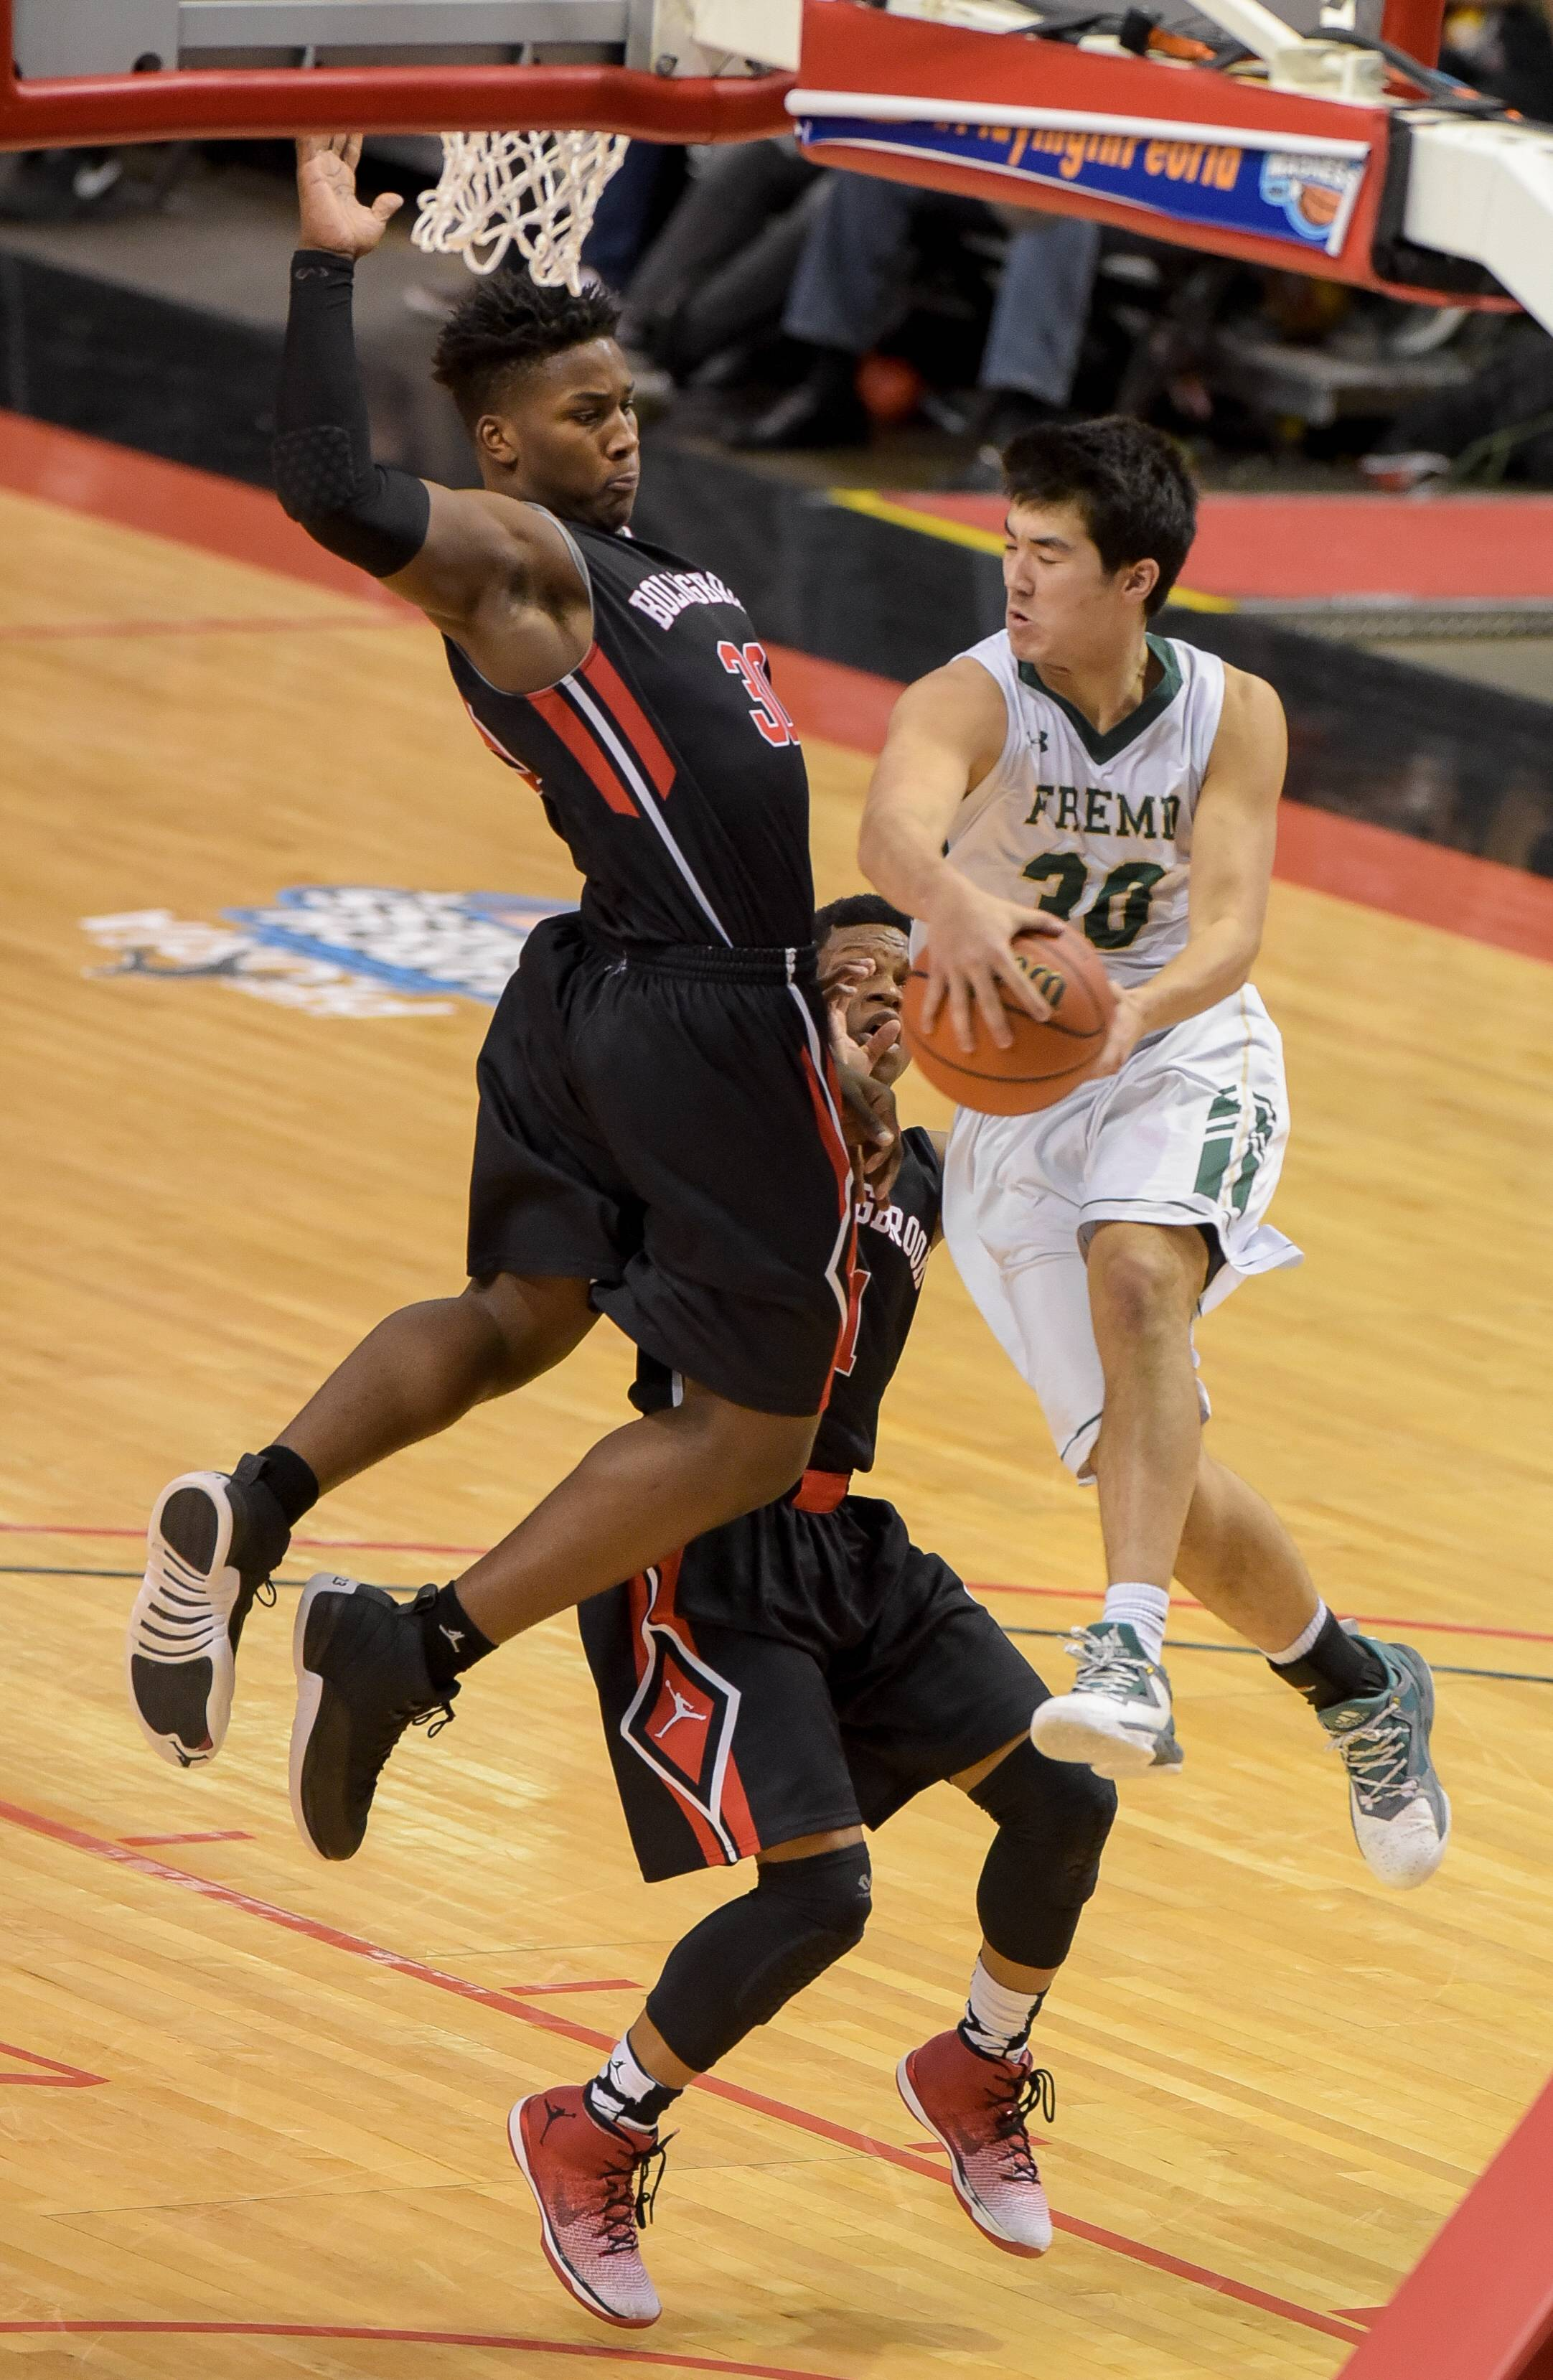 Fremd's Ryan Martin fakes a shot and passes around Bolingbrook's Malik Binns during the Class 4A third-place game on Saturday in Peoria.